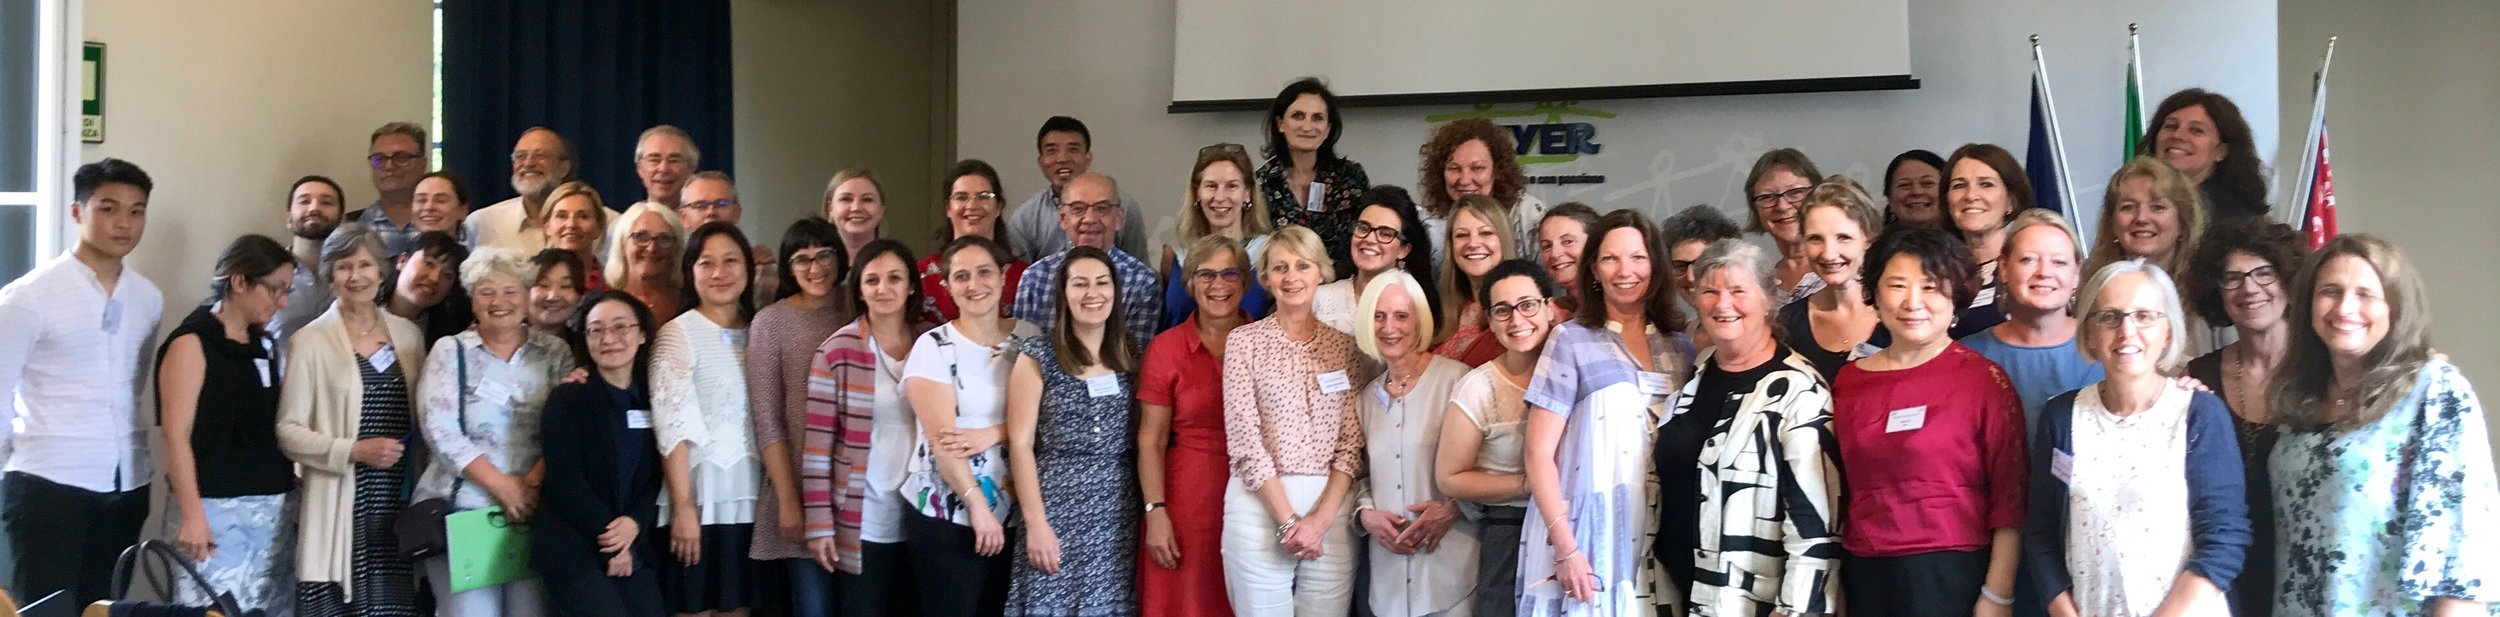 Newborn Infant Network Florence Gathering 2018